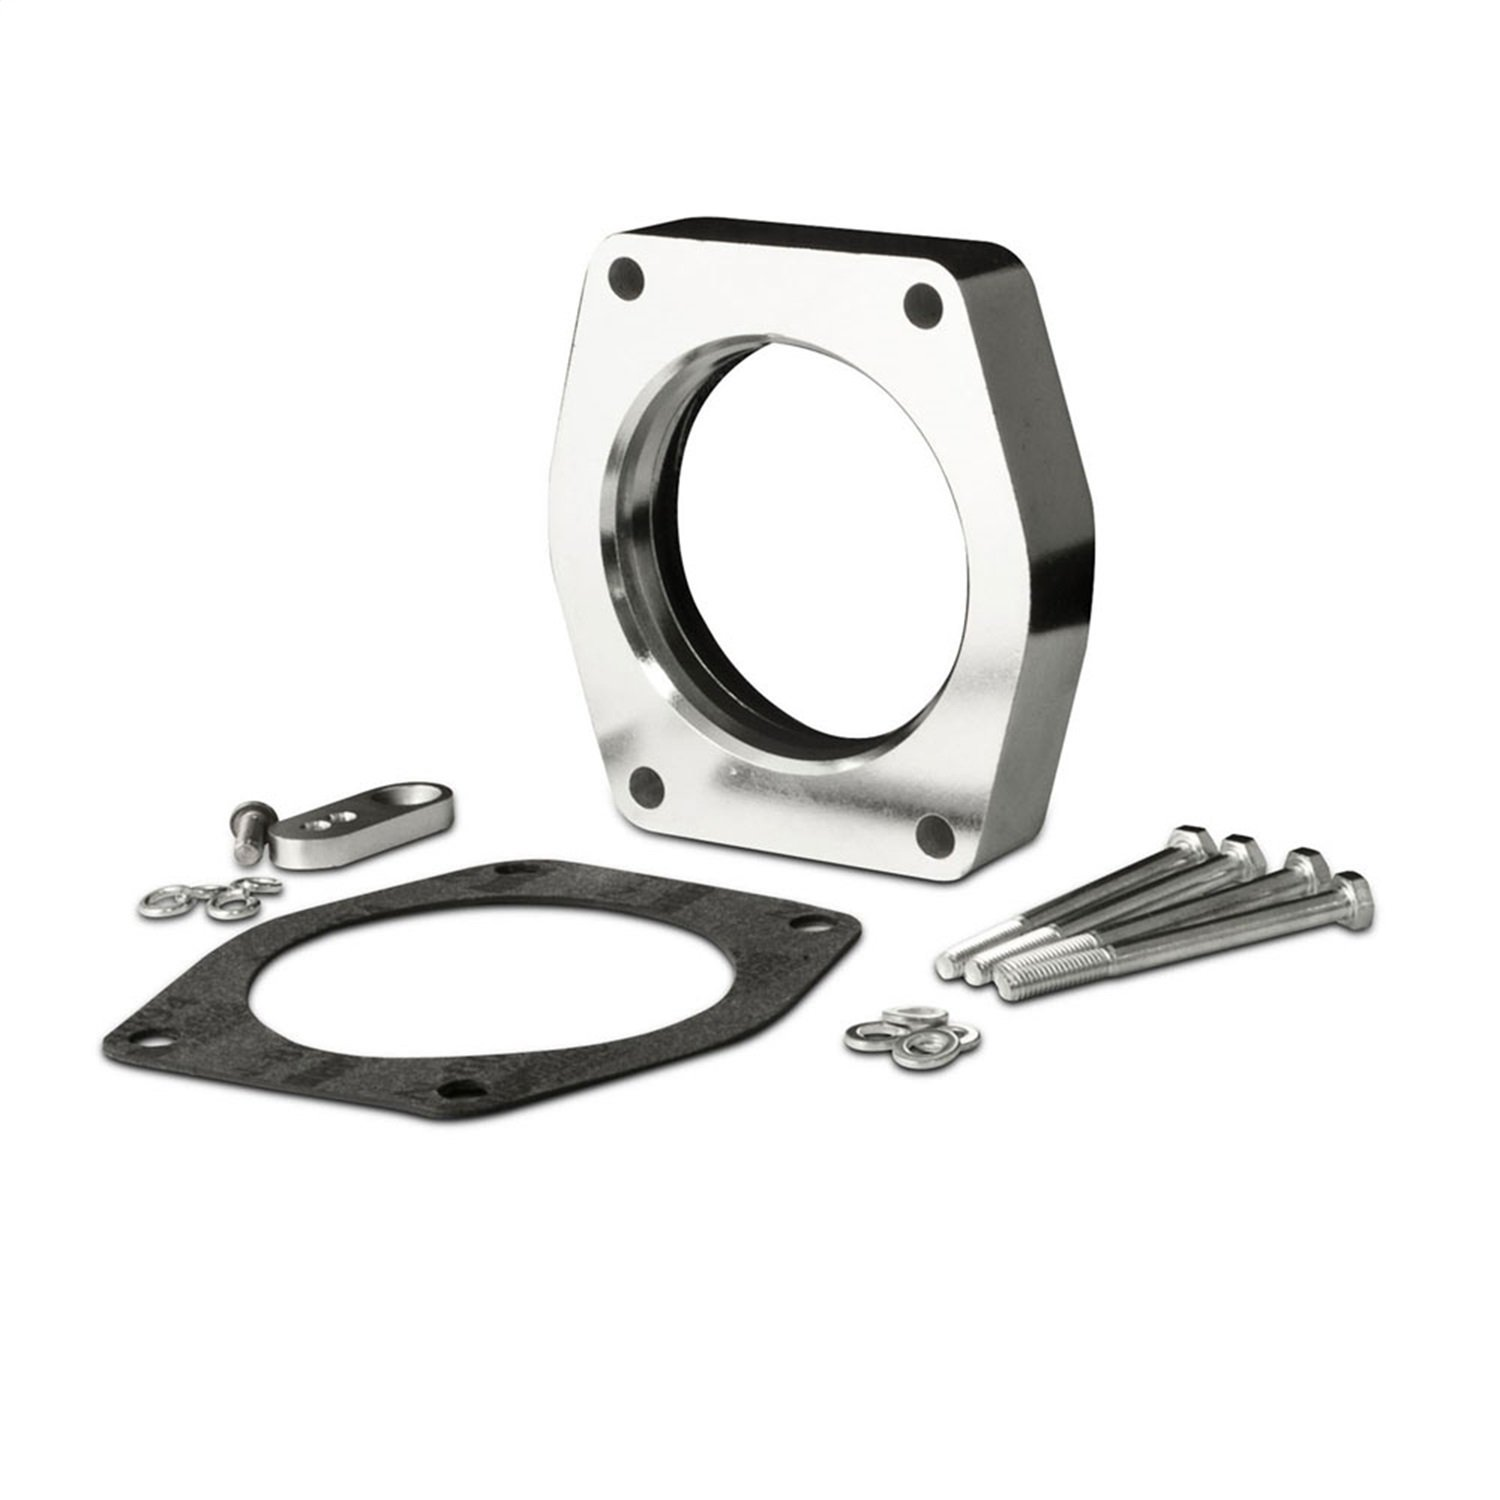 Spectre Performance 11256 Throttle Body Injection Spacer